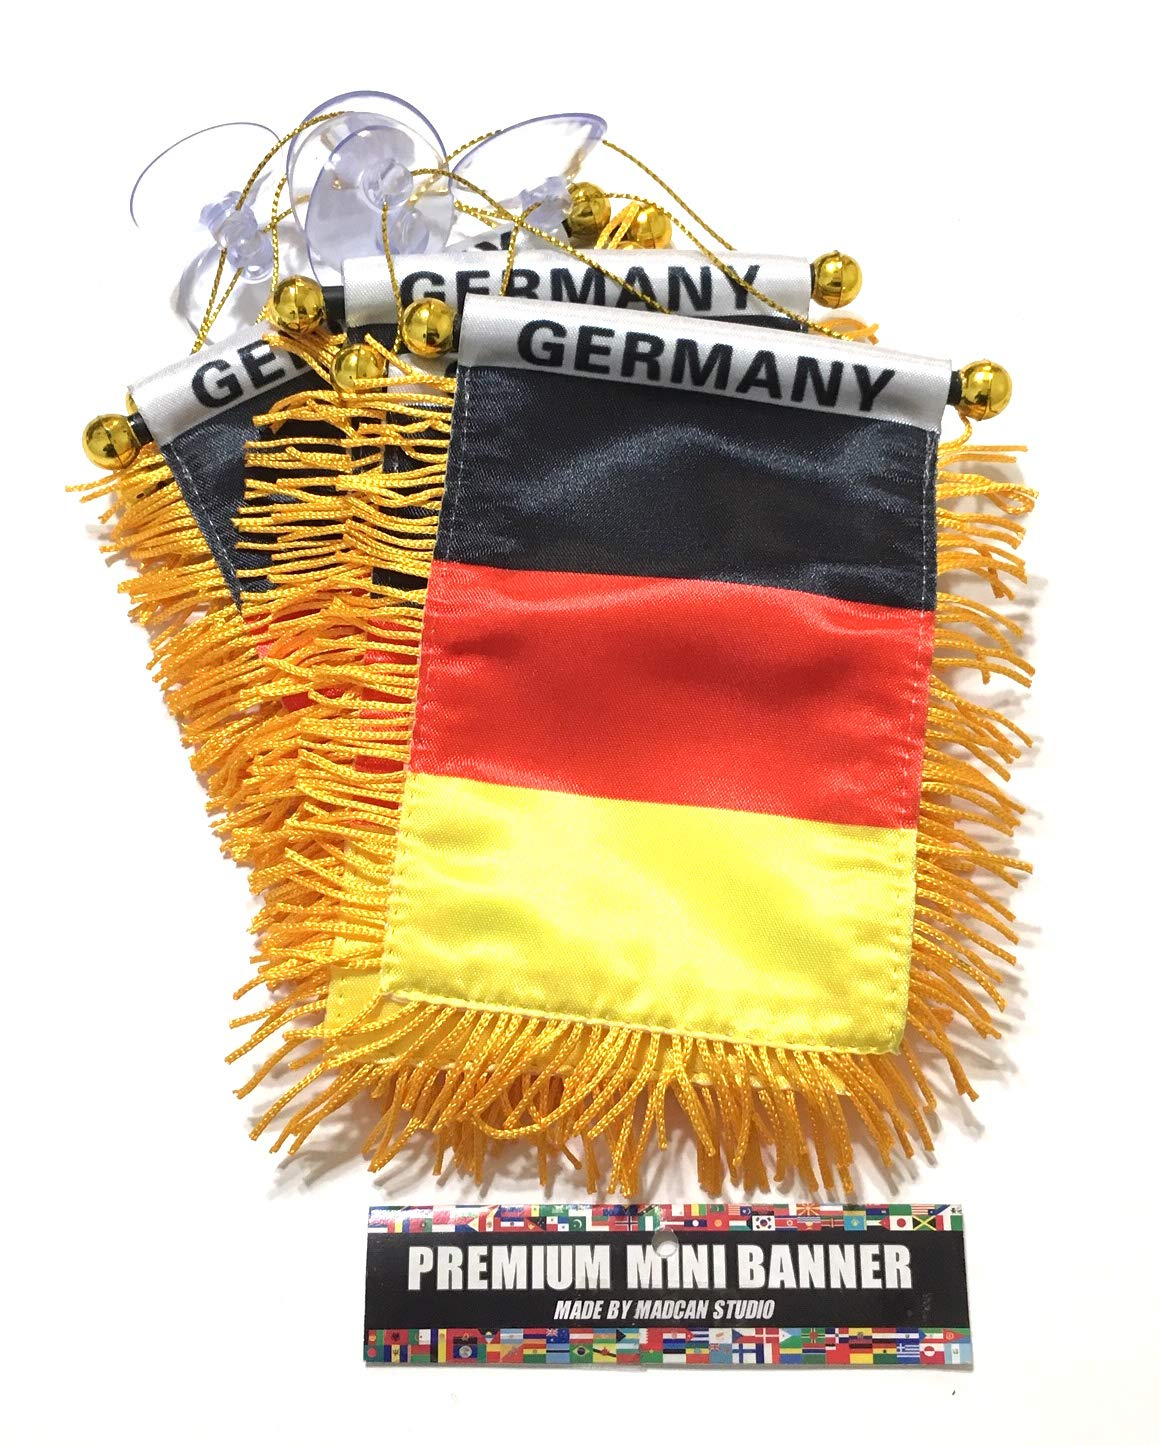 Mad can studios Germany German Flags for Cars Automobile Accessories Home Wall Art Nice Country Flags Wholesale Direct (12)